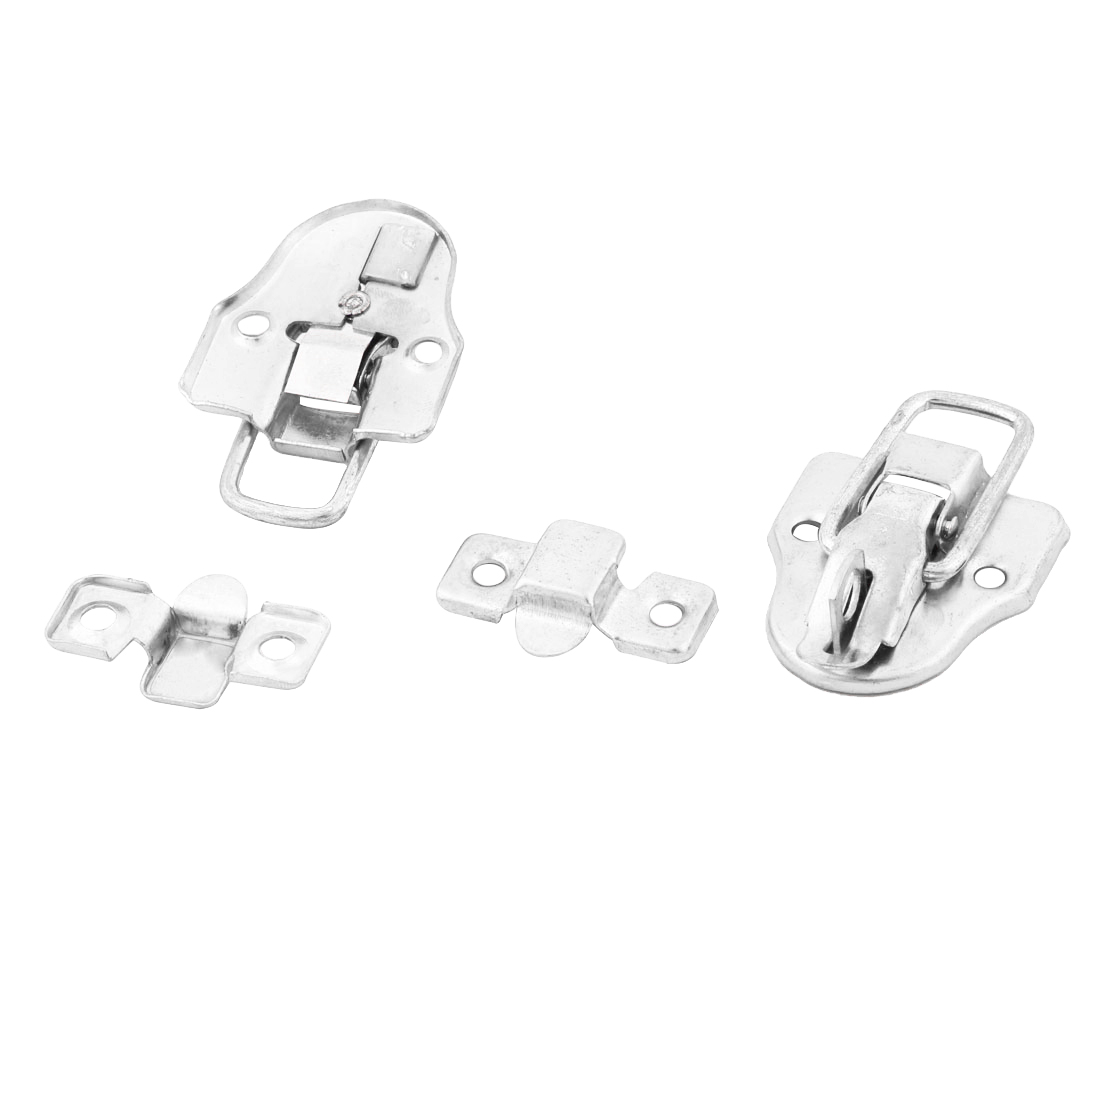 62mmx40mmx15mm Case Metal Hardware Toggle Box Latch Lock Hasp Silver Tone 2 PCS